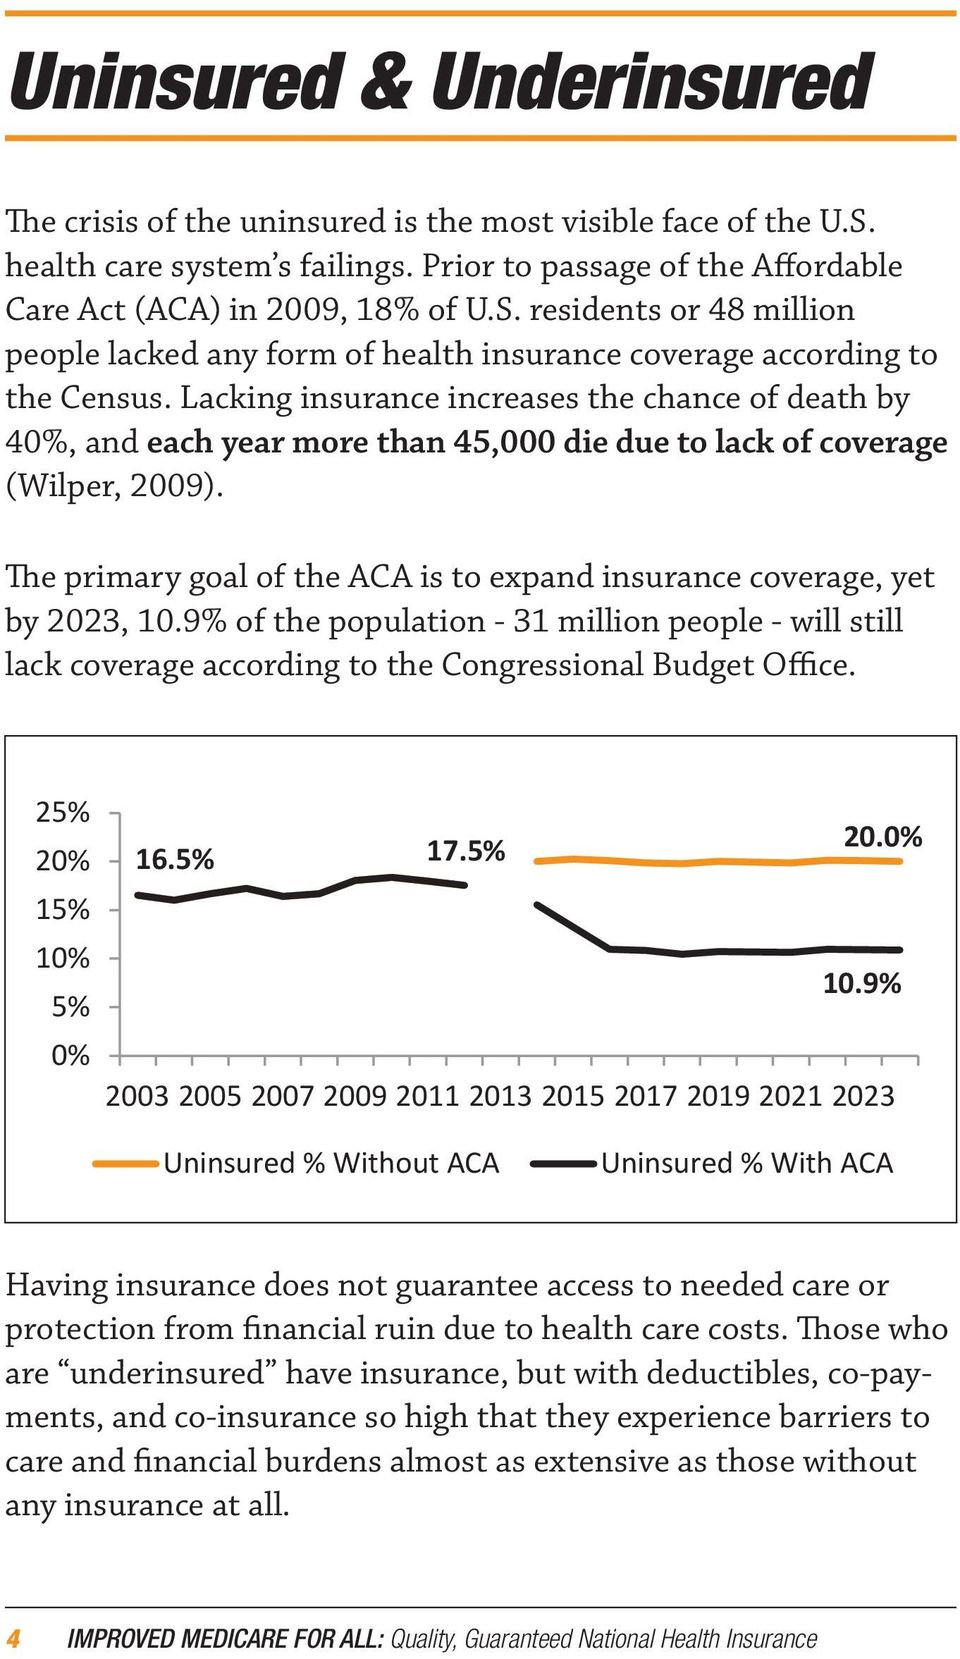 The primary goal of the ACA is to expand insurance coverage, yet by 2023, 10.9% of the population - 31 million people - will still lack coverage according to the Congressional Budget Office.